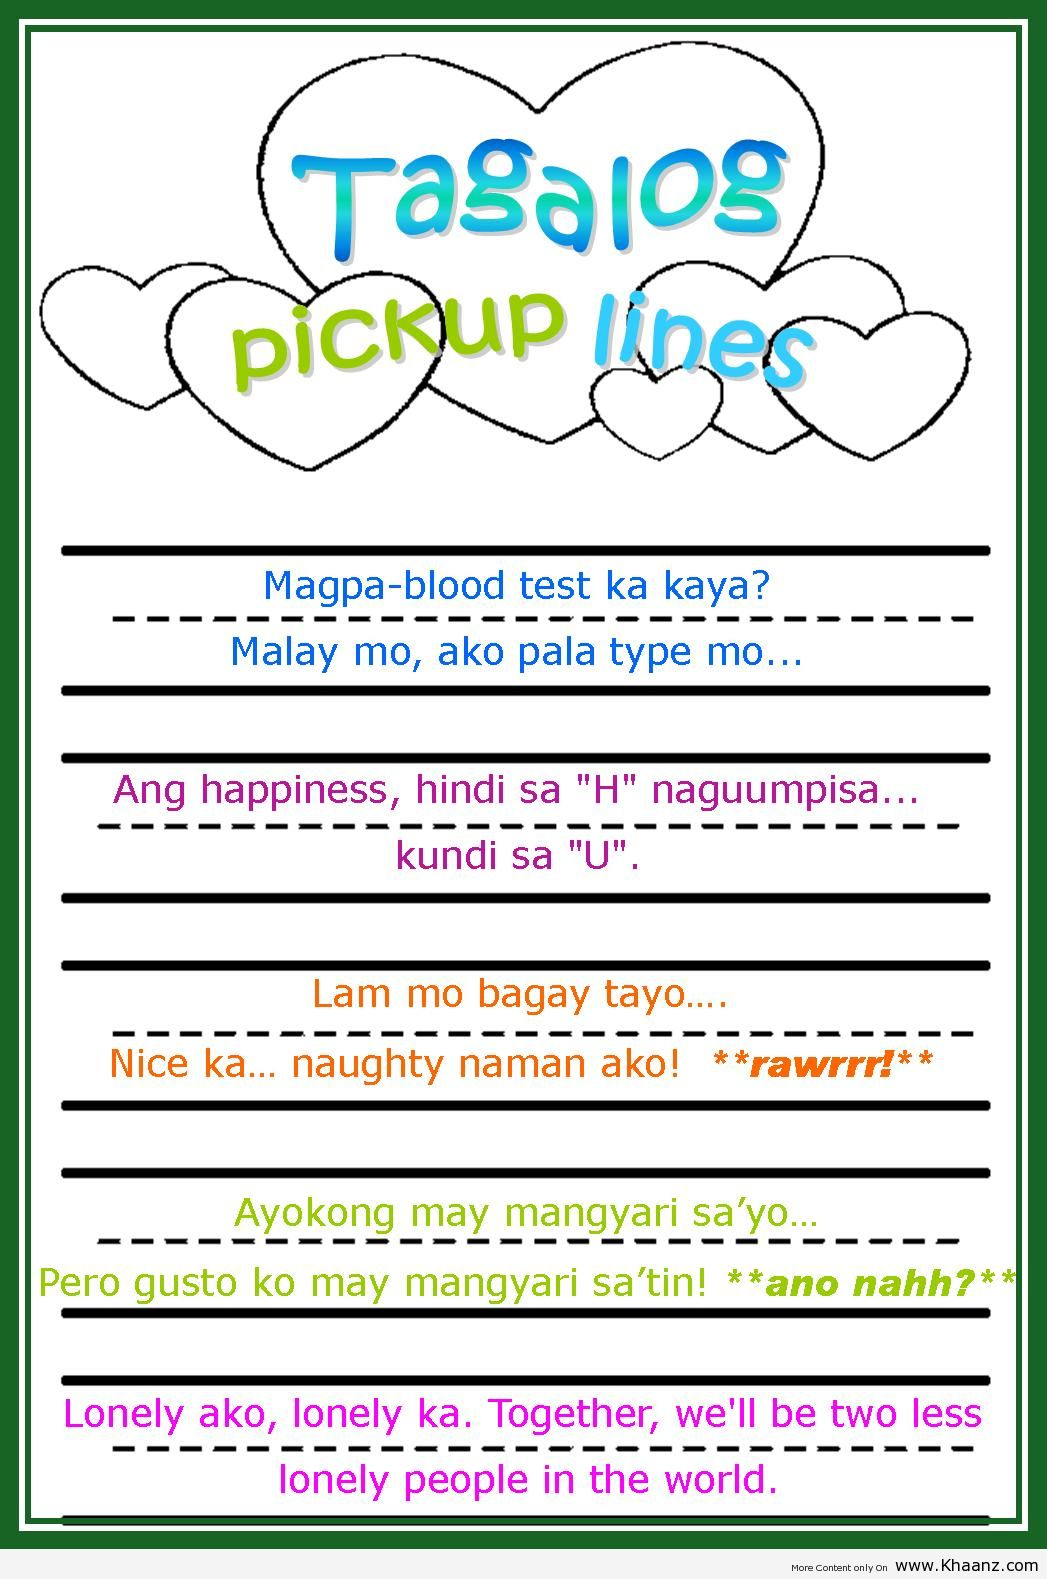 Women's pick-up lines - Pinoy Guy Guide